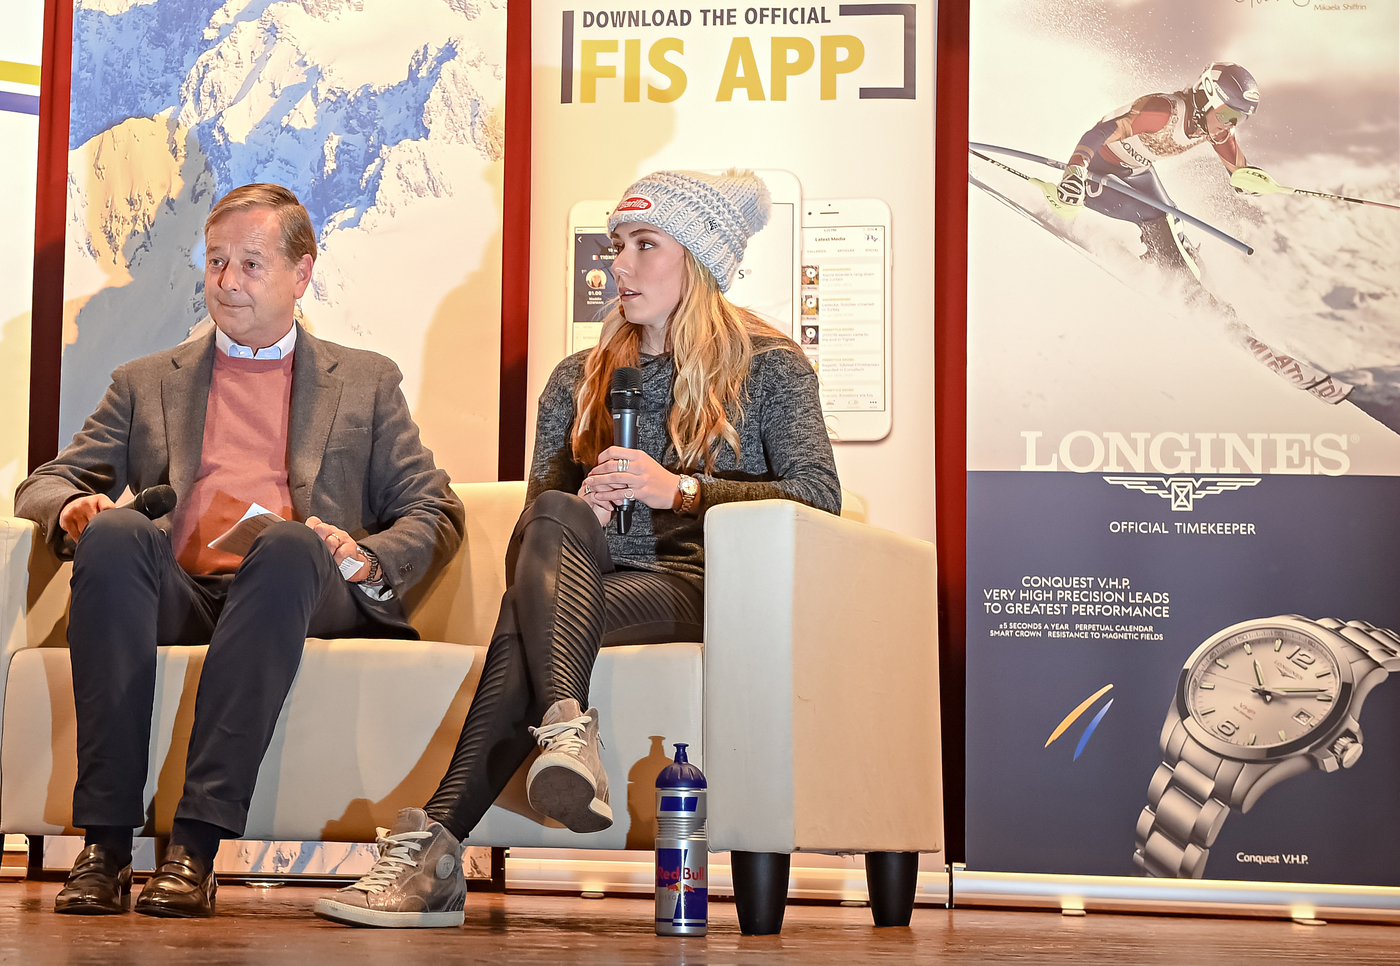 Longines Alpine Skiing Event: Longines' precision to serve the FIS World Cup with the new Conquest V.H.P. model 3